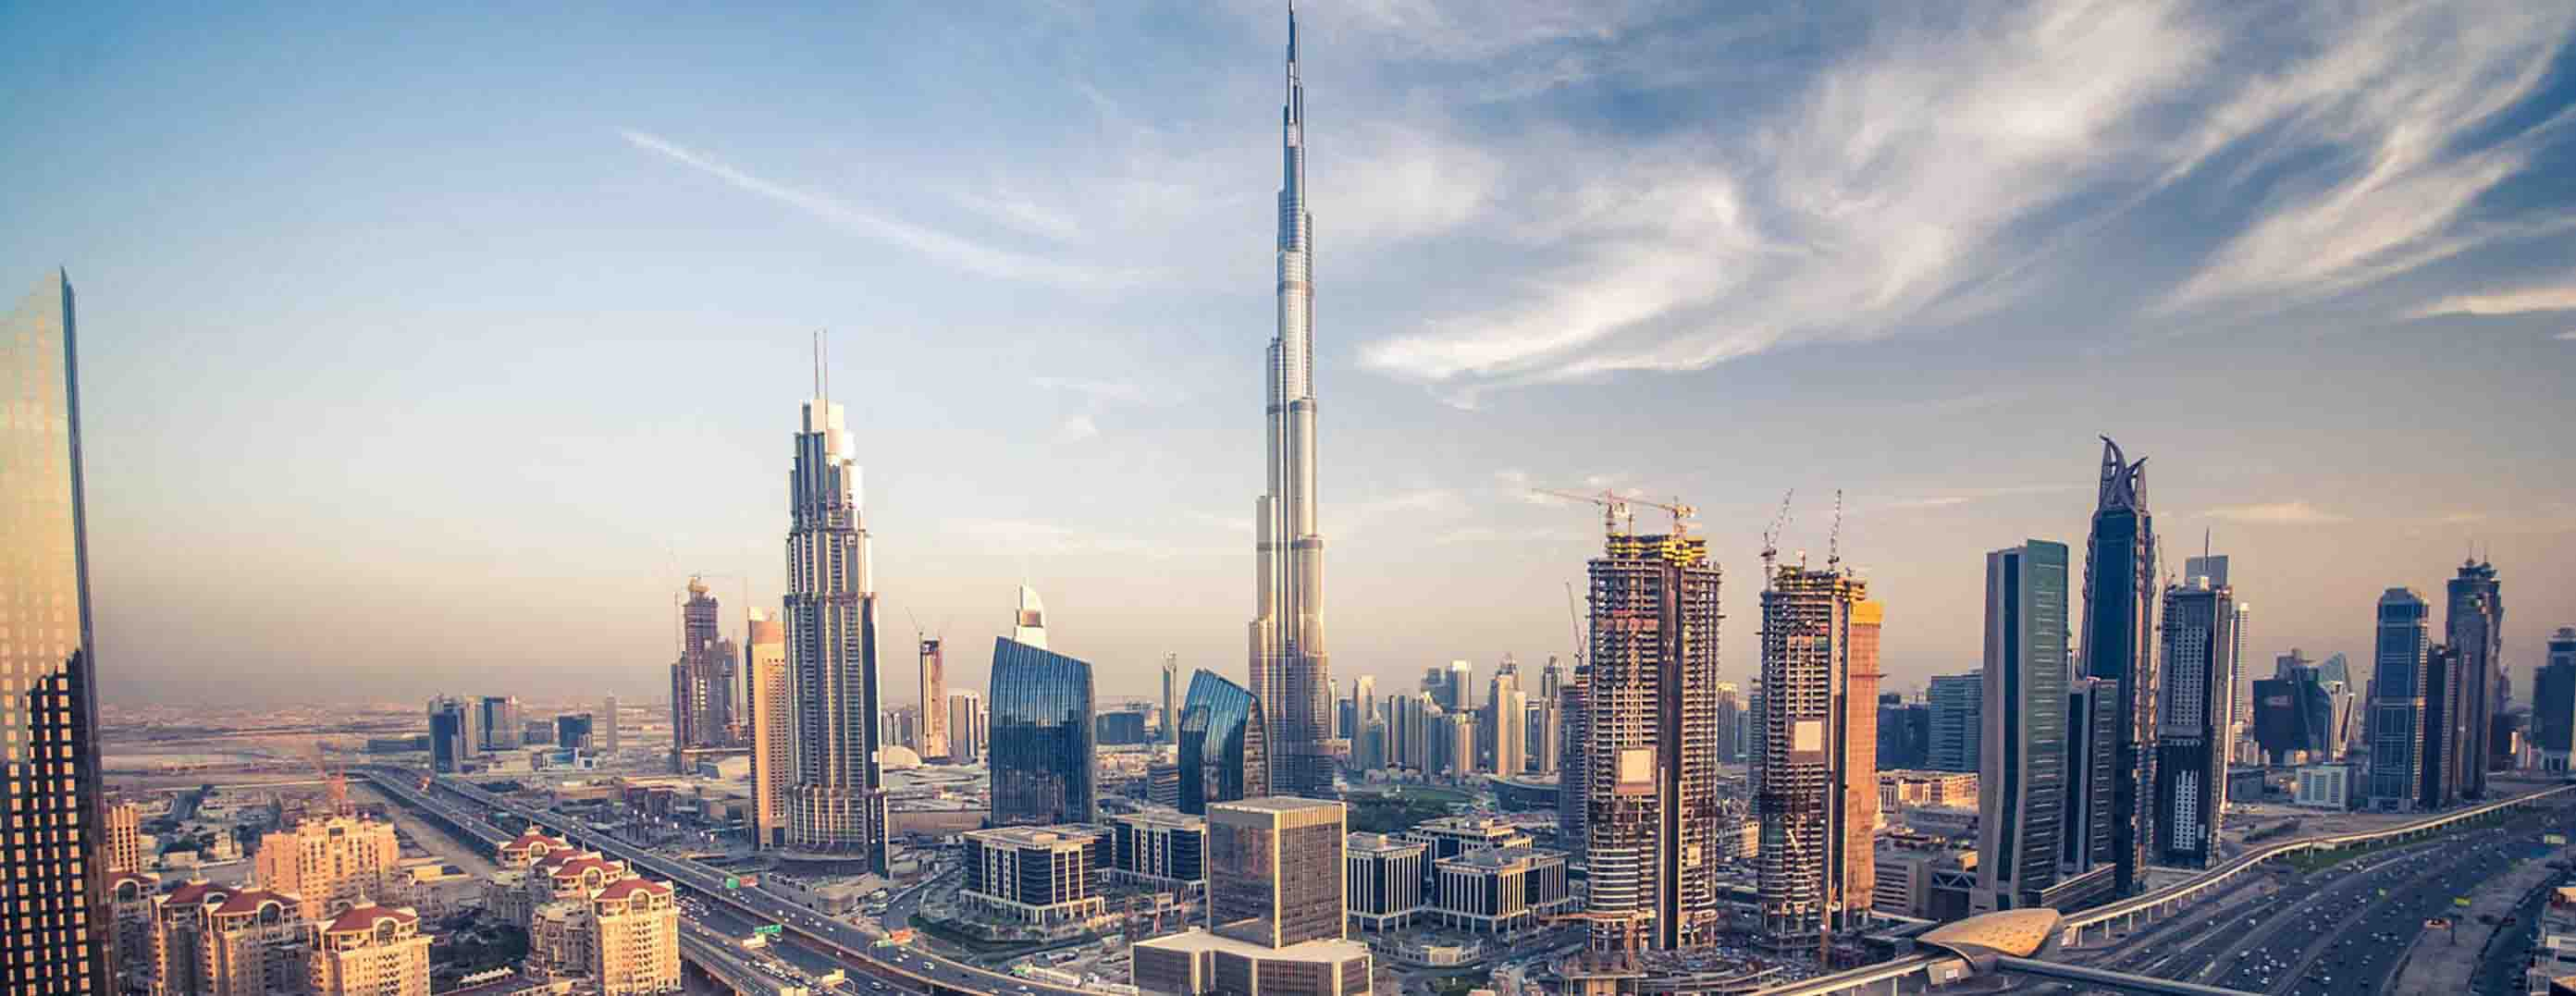 Dubai attestation, salary certificate attestation in uae